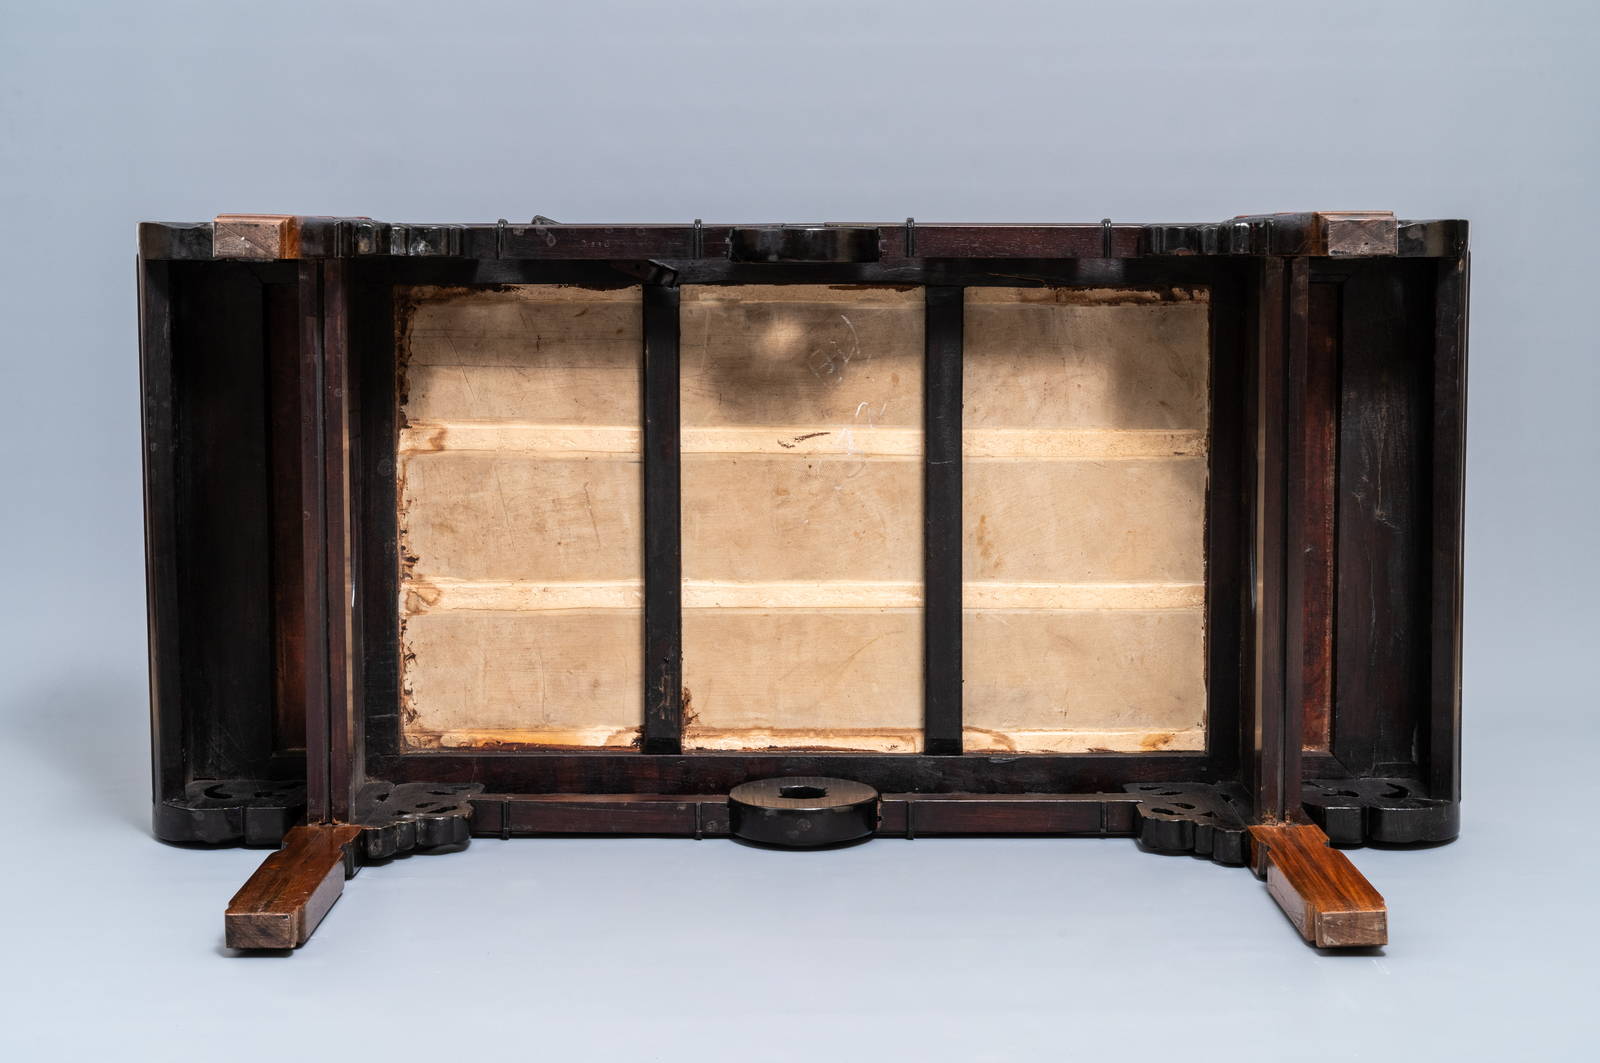 Lot 18 - A large Chinese famille rose plaque inset in a wooden table, Republic, 20th C.